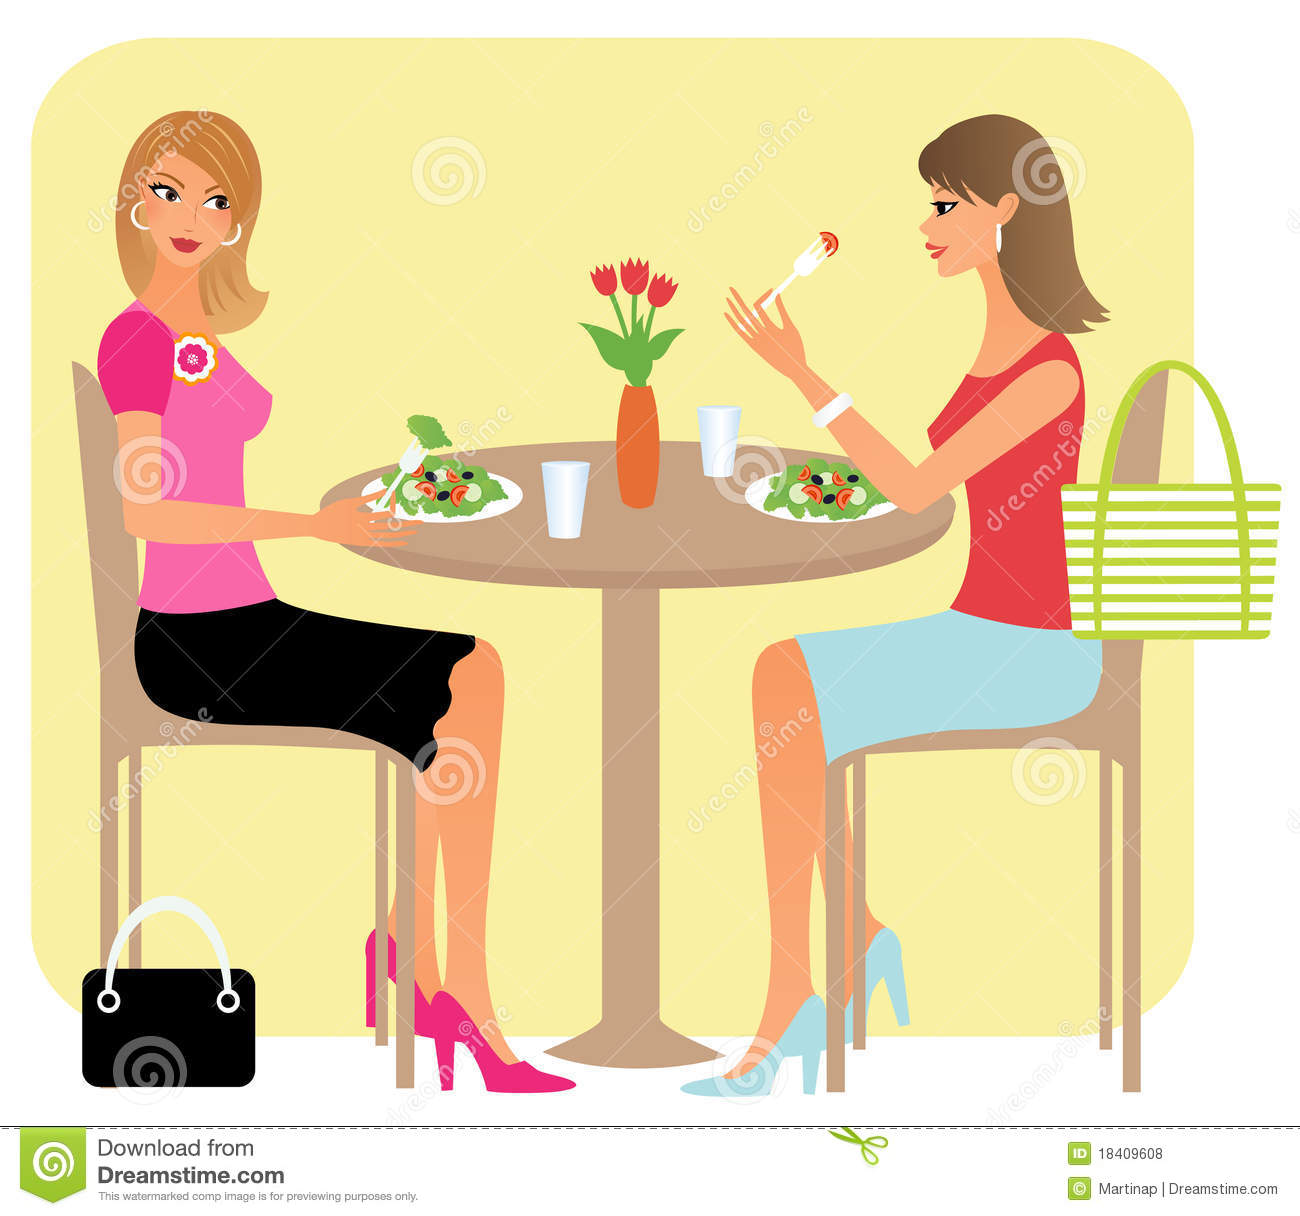 Two attractive girl-friends chatting over their lunch in a restaurant.